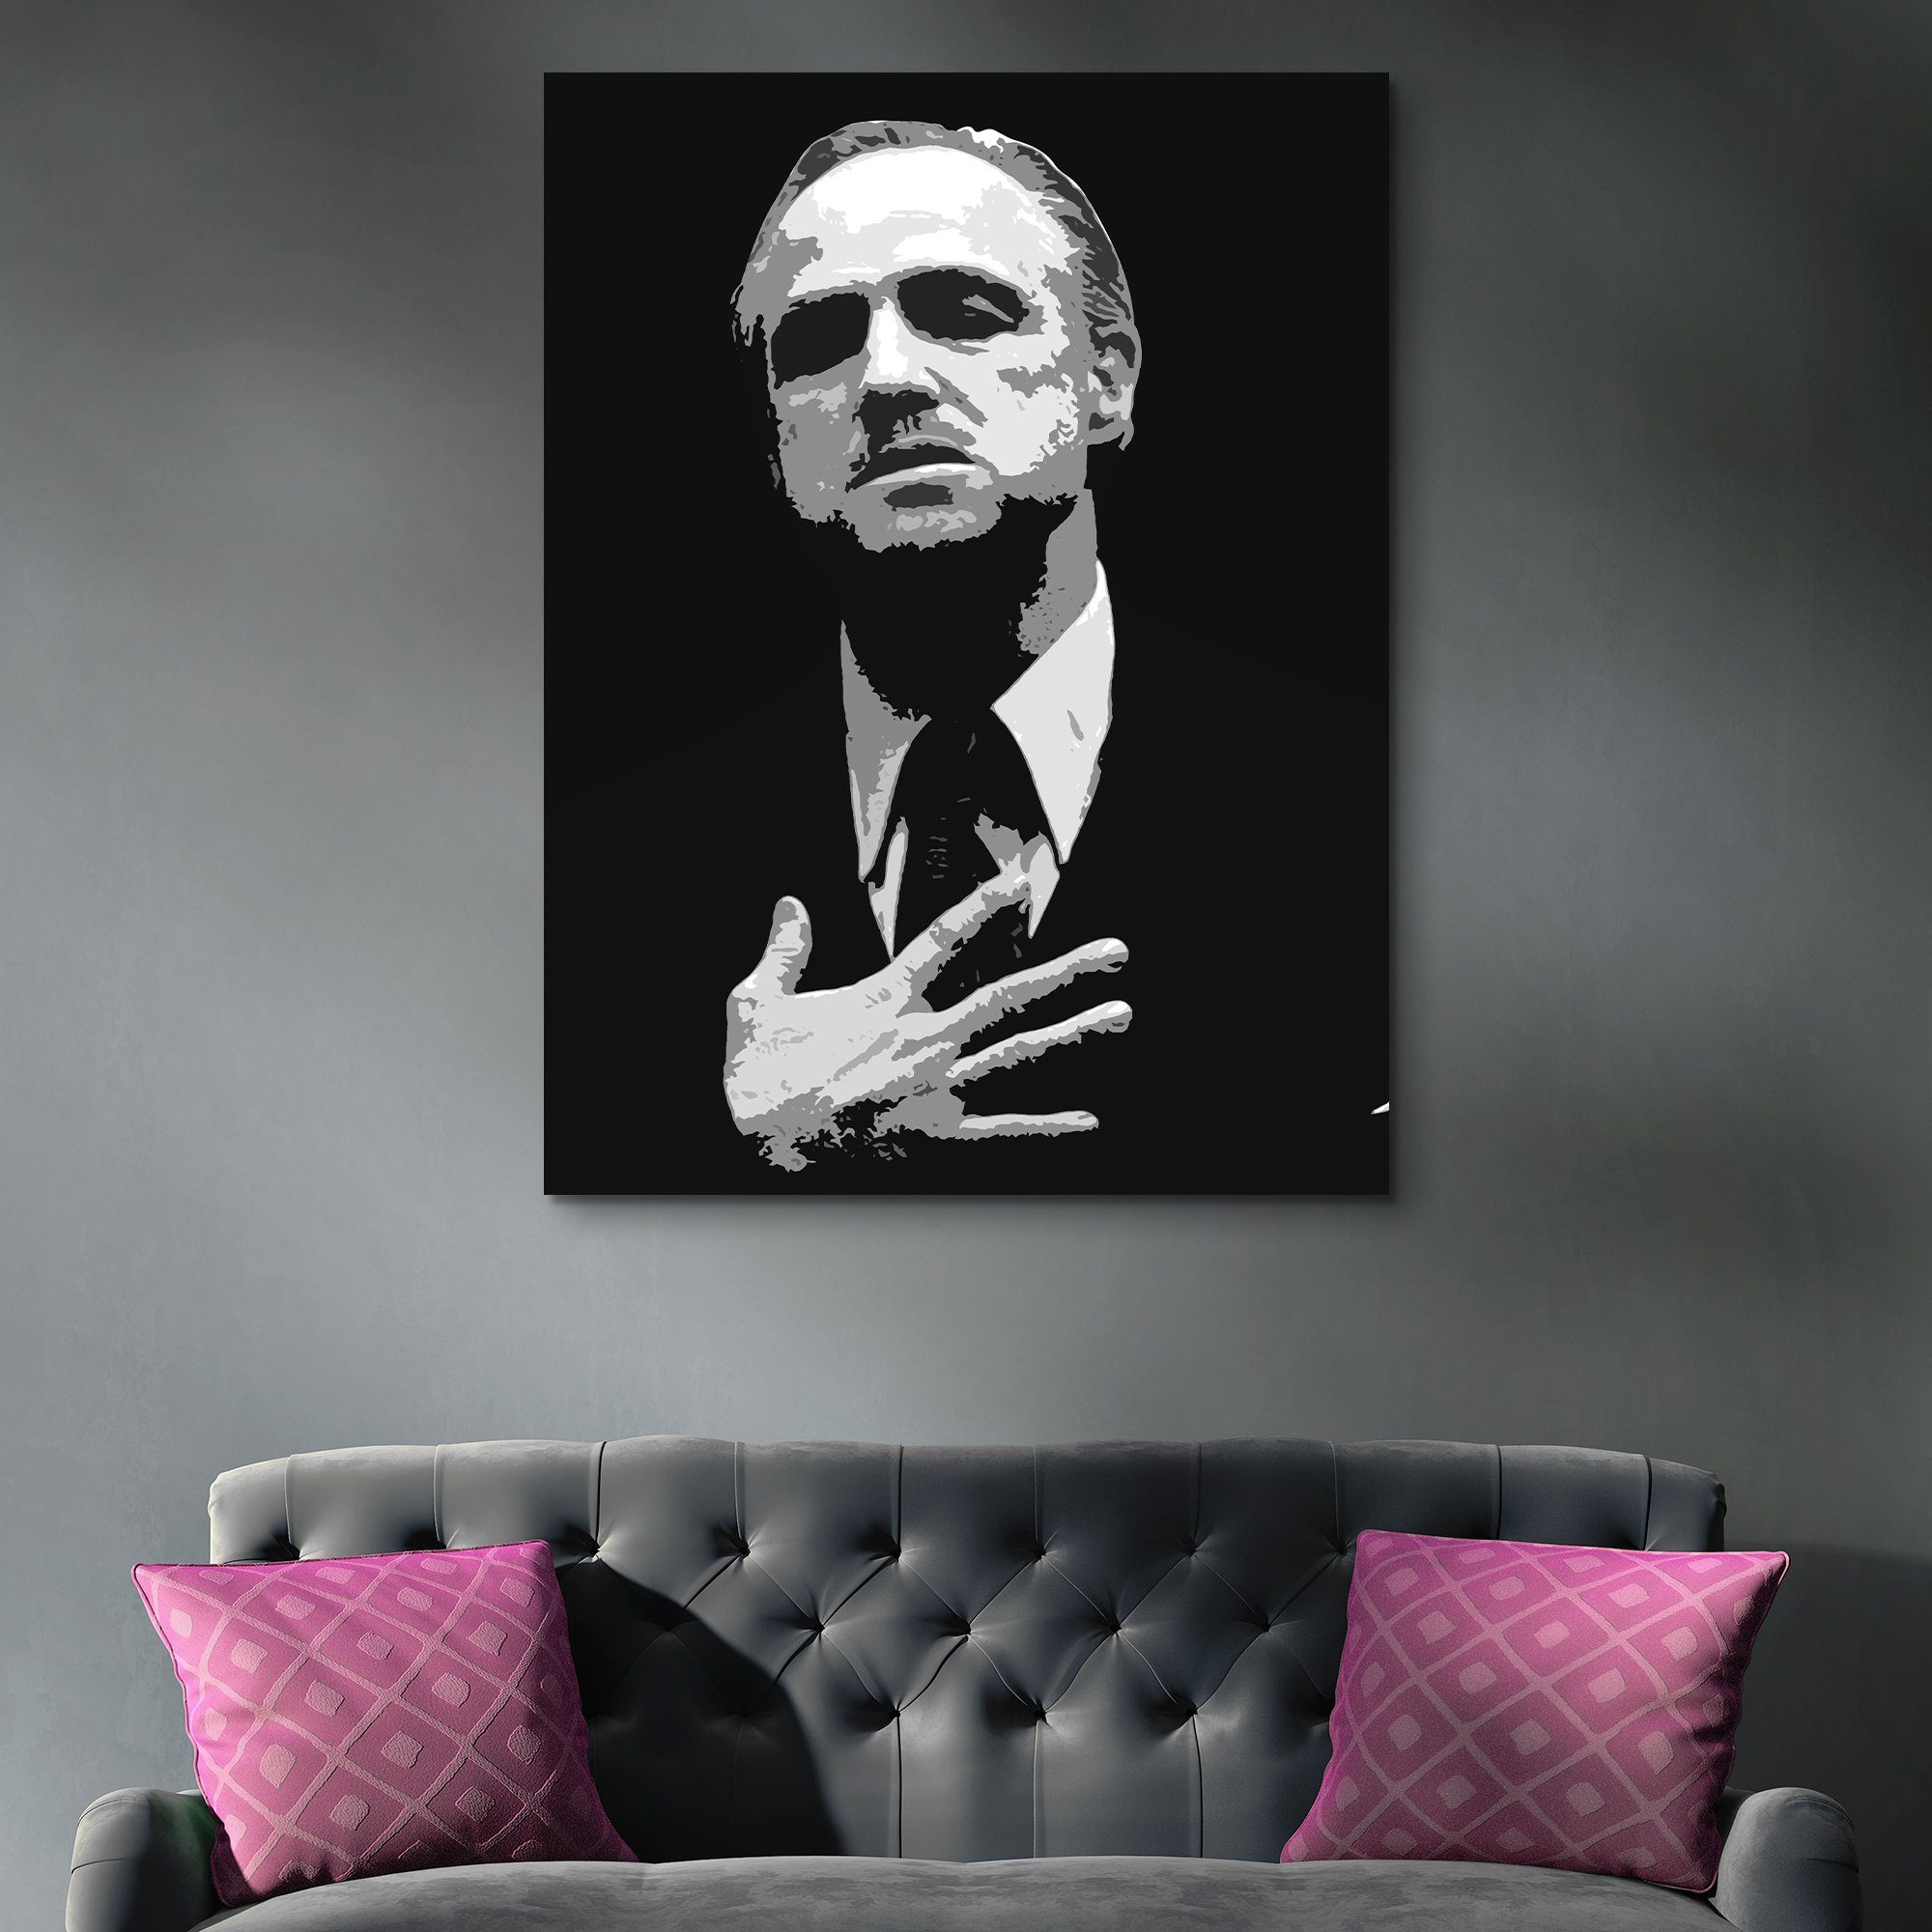 Don Vito Corleone wall art